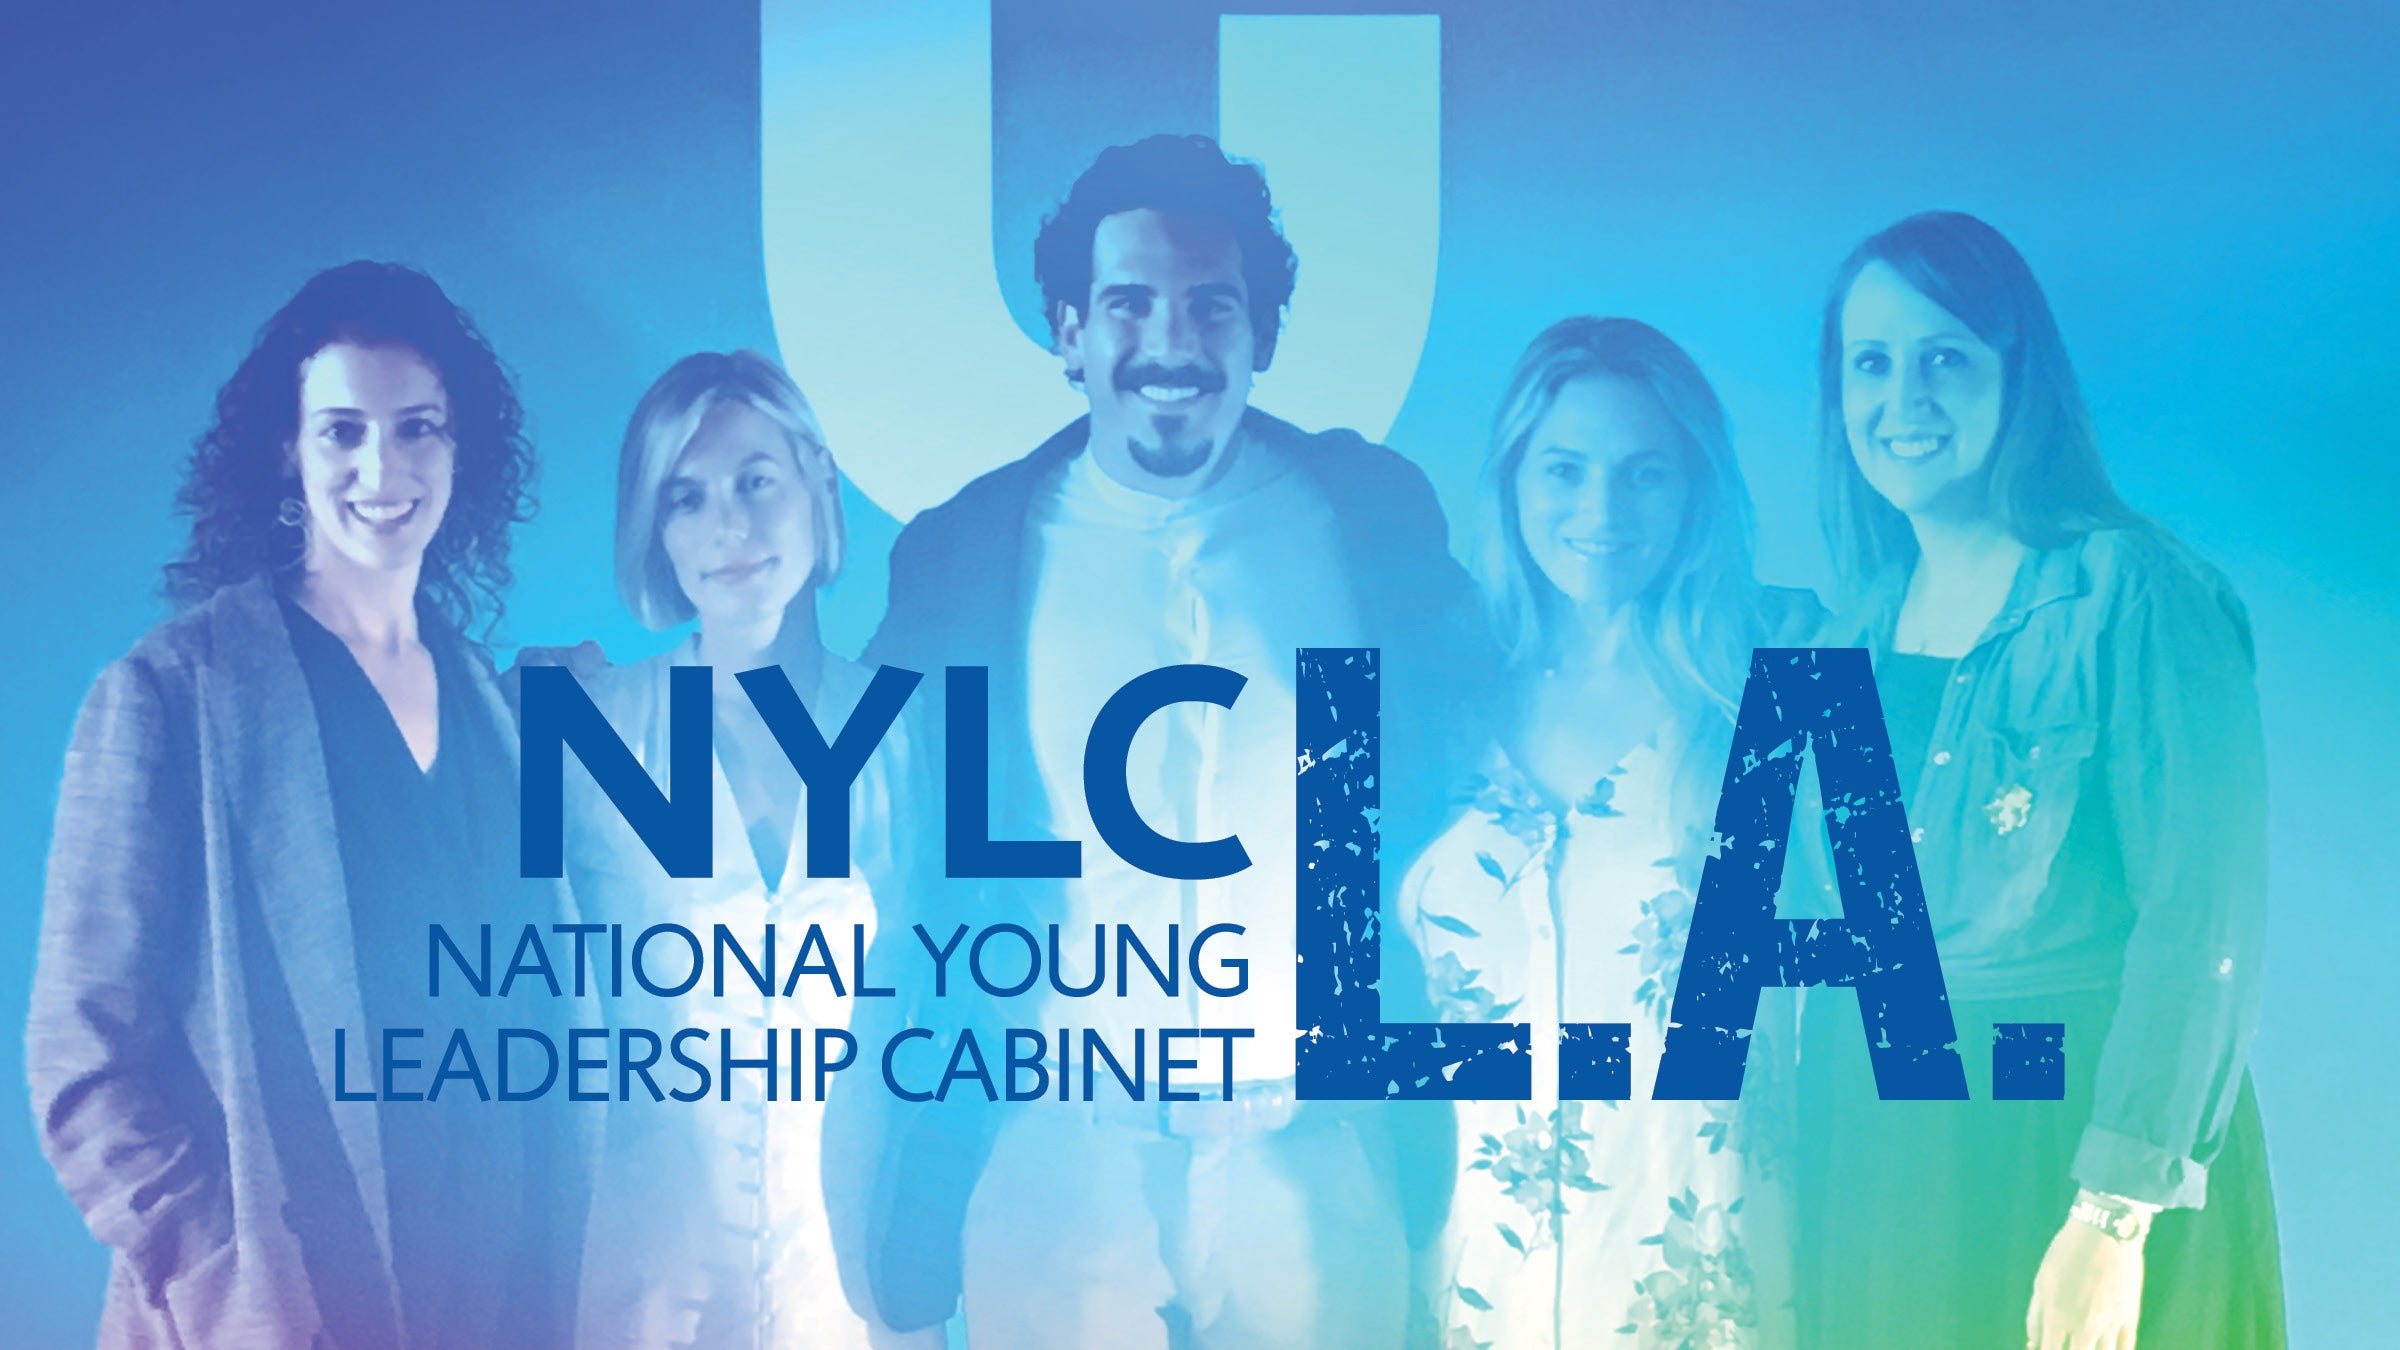 National Young Leadership Cabinet